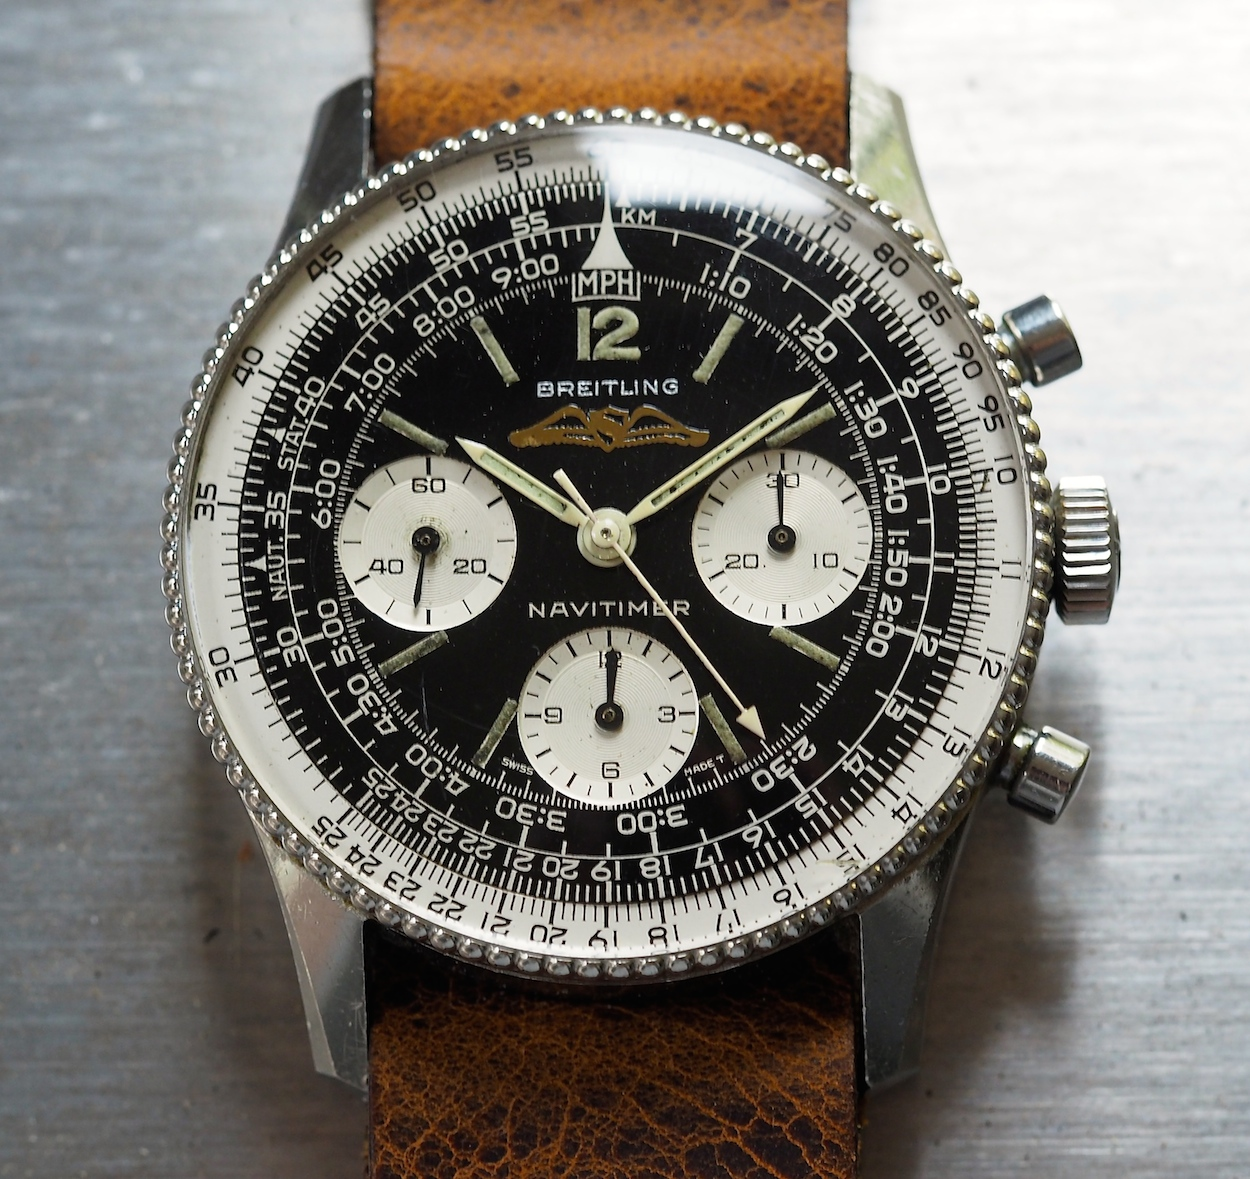 Replica Breitling Navitimer 806 Black Dial Steel Watch